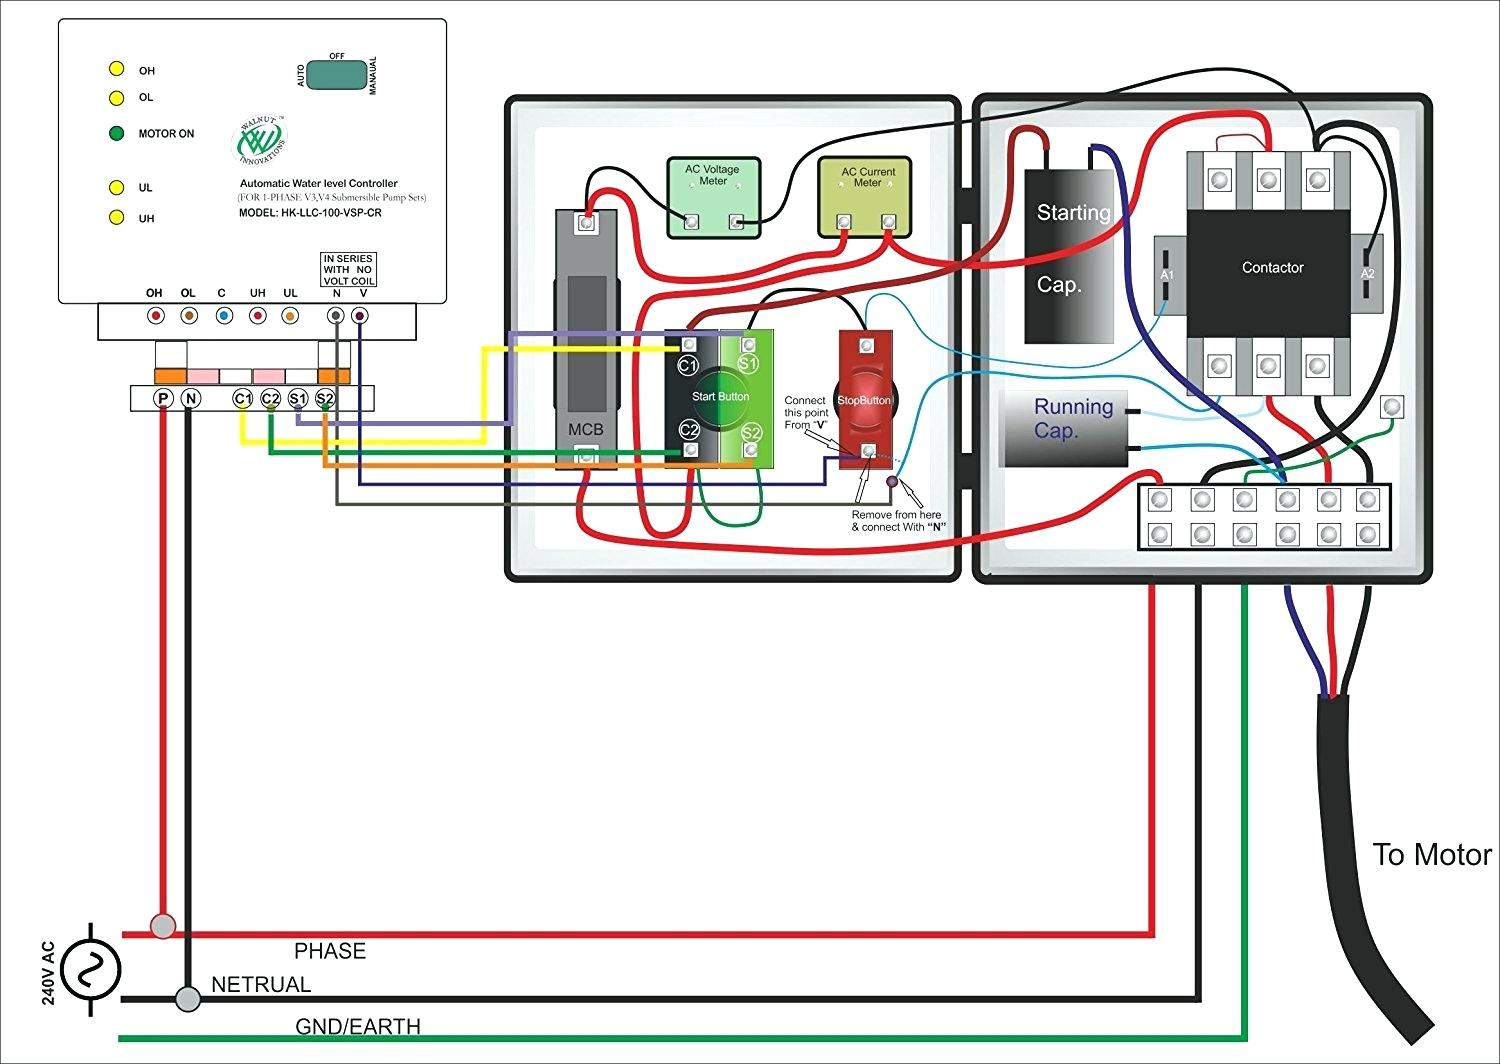 hight resolution of wayne water pump wiring diagram wiring diagram databasewayne pump wiring diagram wiring diagram sys wayne pump